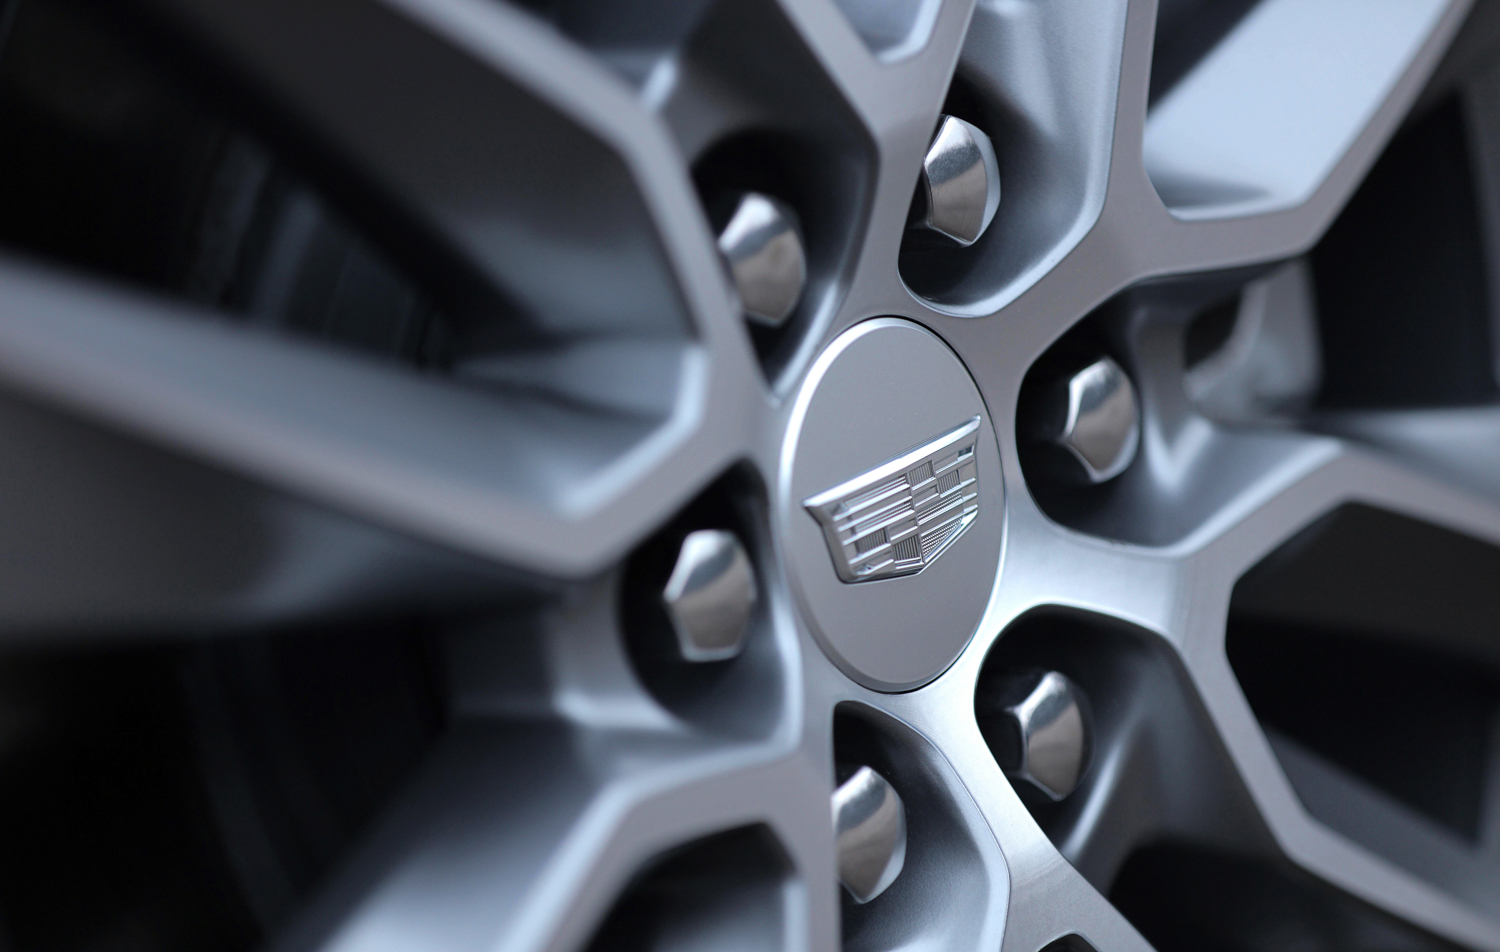 2020 Cadillac XT6 wheel detail